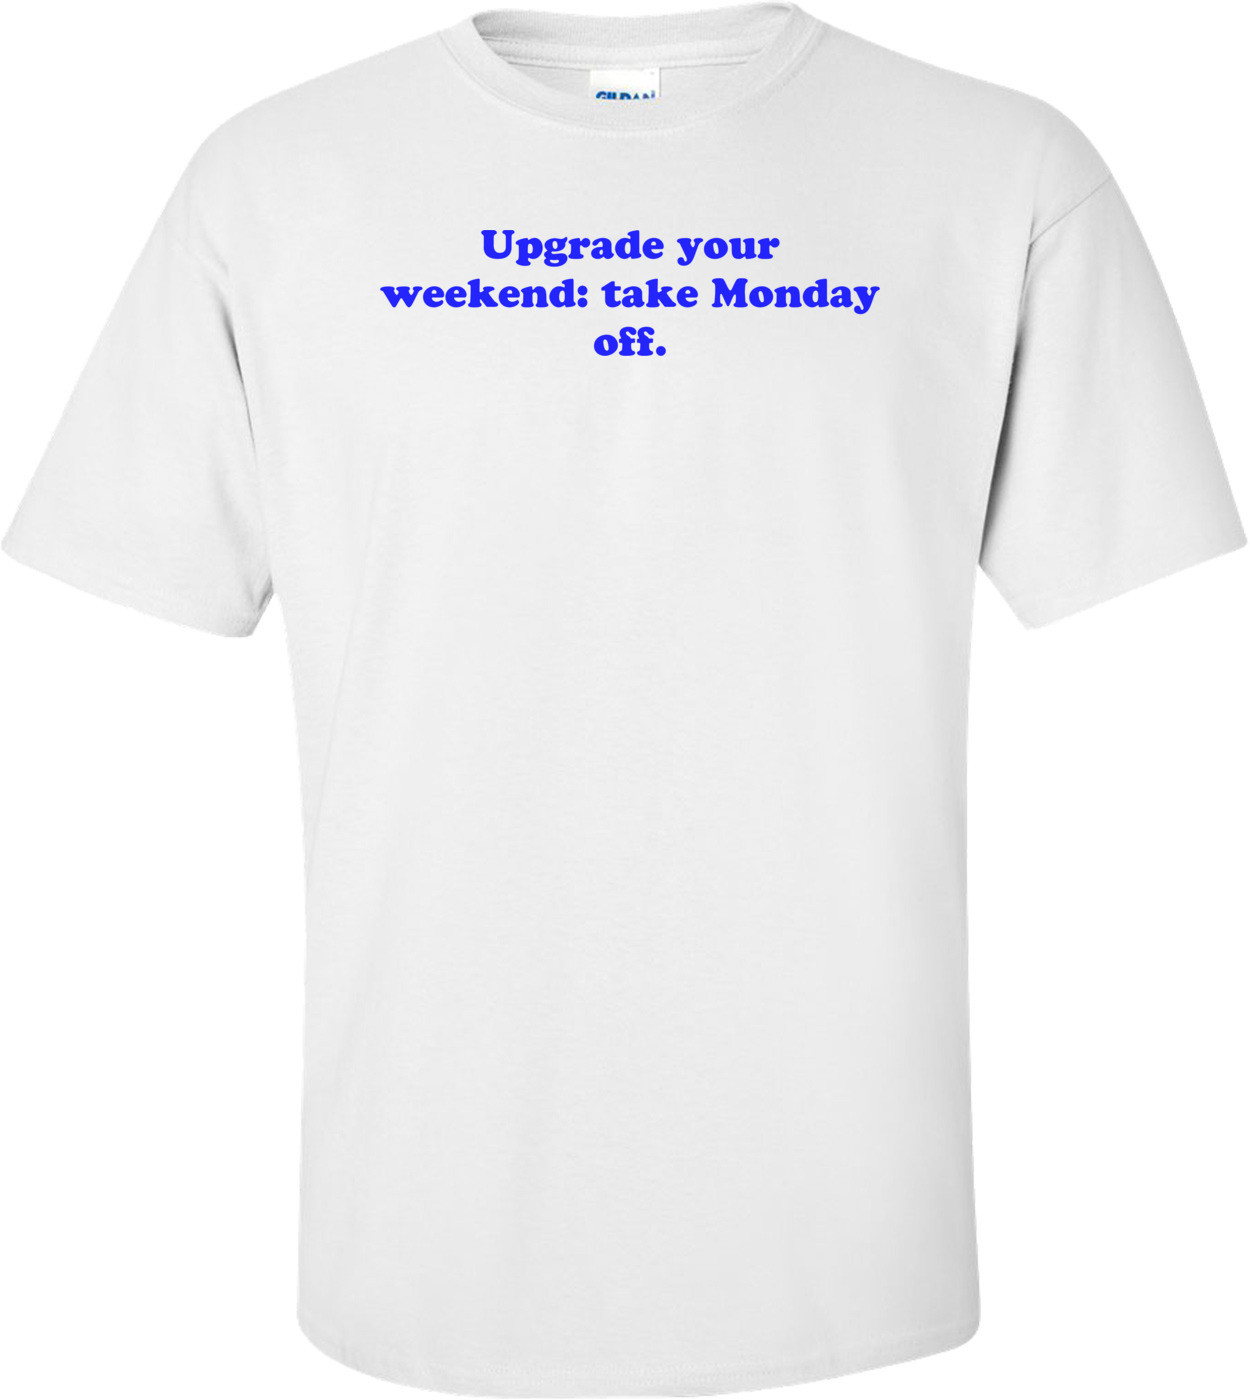 Upgrade your weekend: take Monday off. Shirt